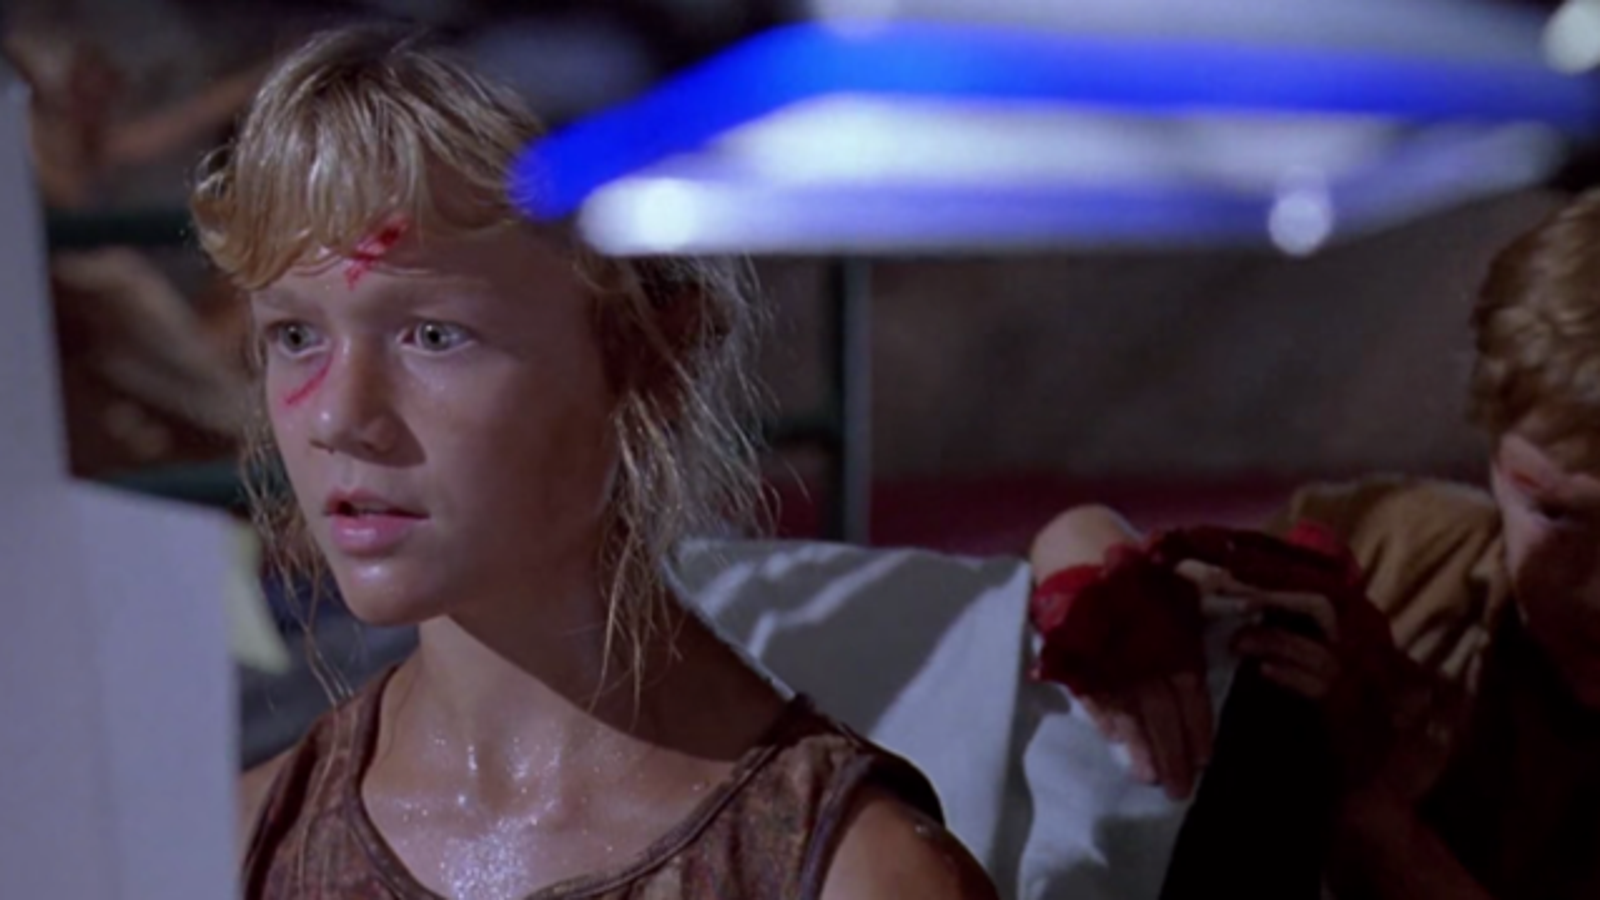 Game Lets You Hack the Mainframe Just Like in Jurassic Park